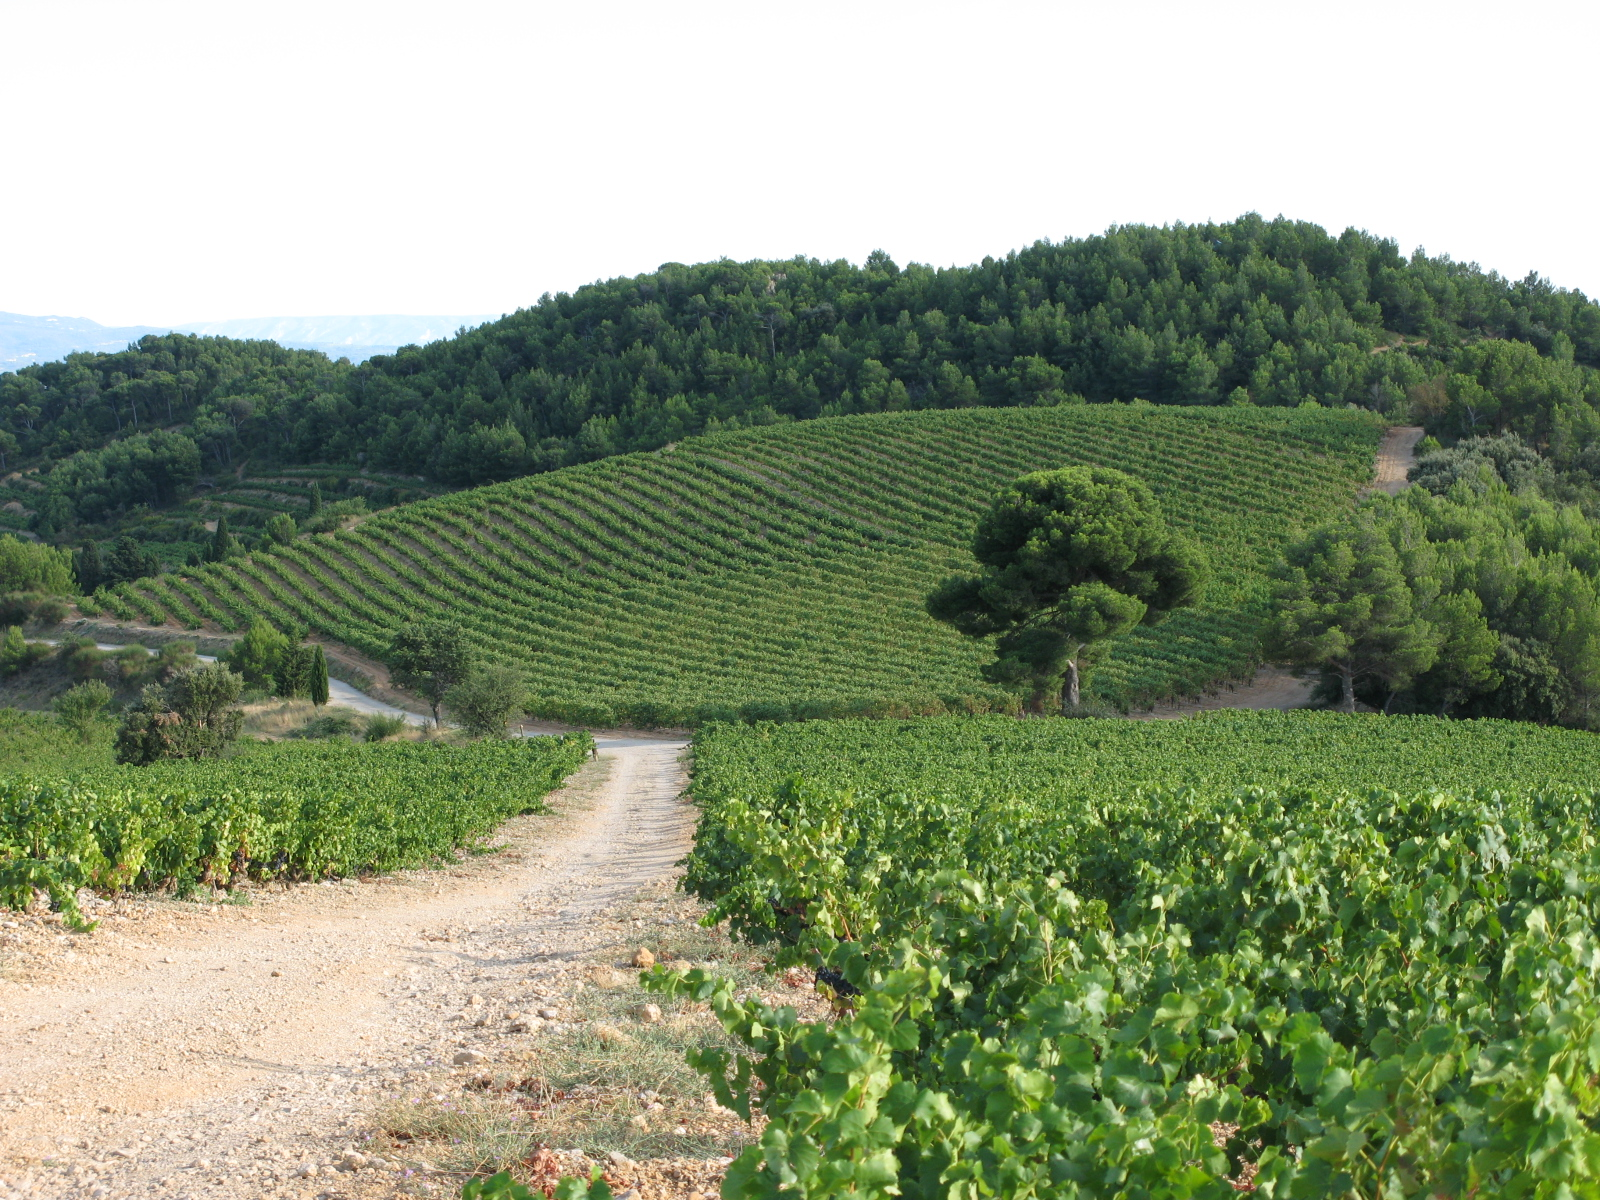 Vineyard in Gigondas, France. ©Robert Cudmore, Flickr user: Licensed through Creative Commons license